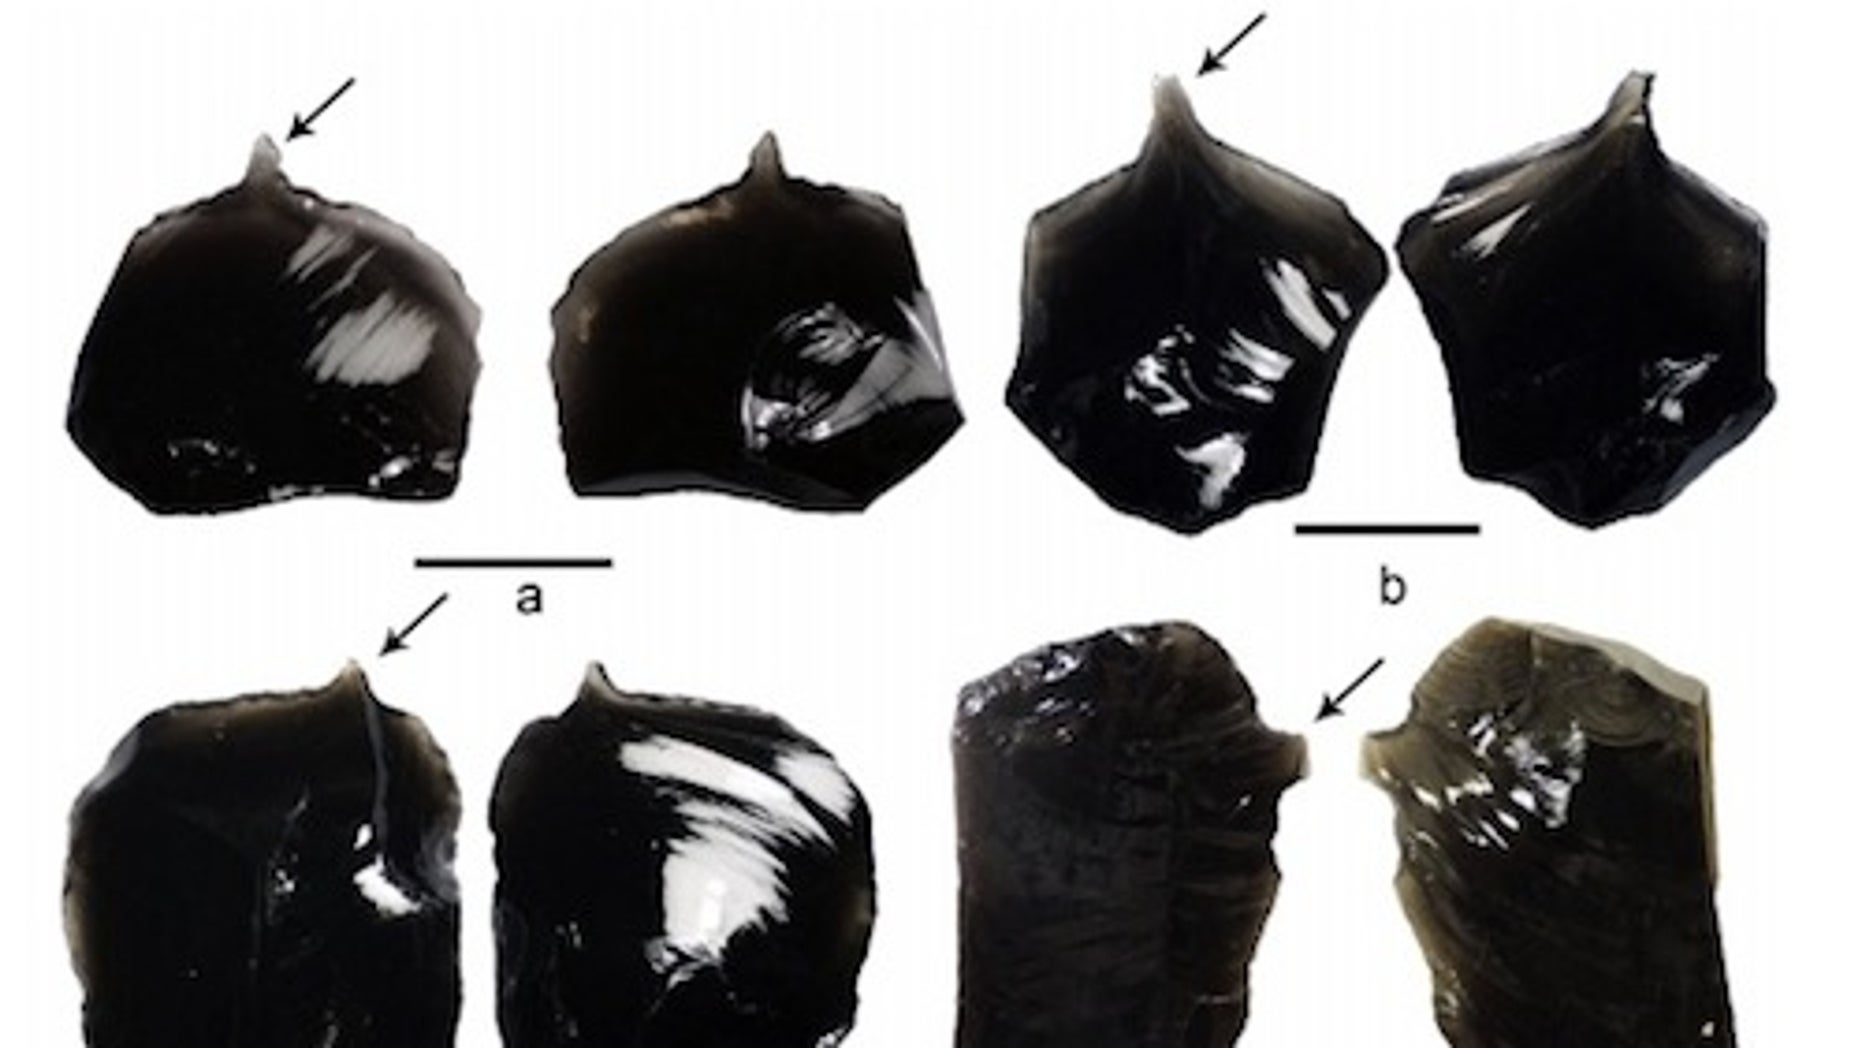 Archaeologists analyzed 15 obsidian artifacts recovered from the Nanggu site in the Solomon Islands and found that they were likely used for tattooing.